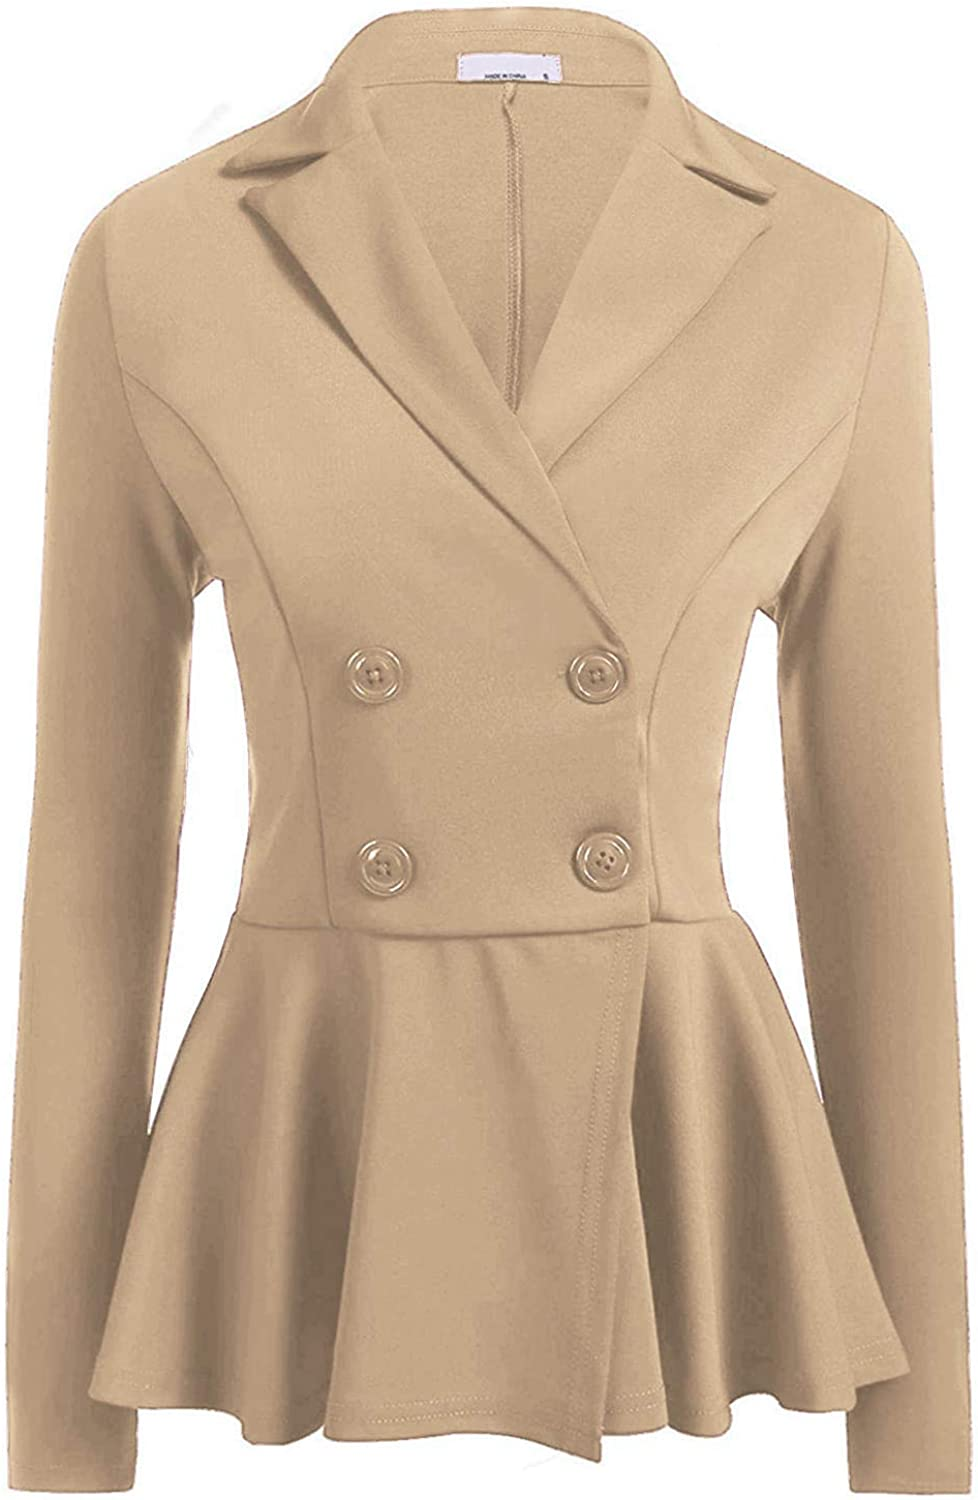 Befily Womens Work Office Open Front Blazer Casual Long Sleeve Jacket with Buttons Khaki